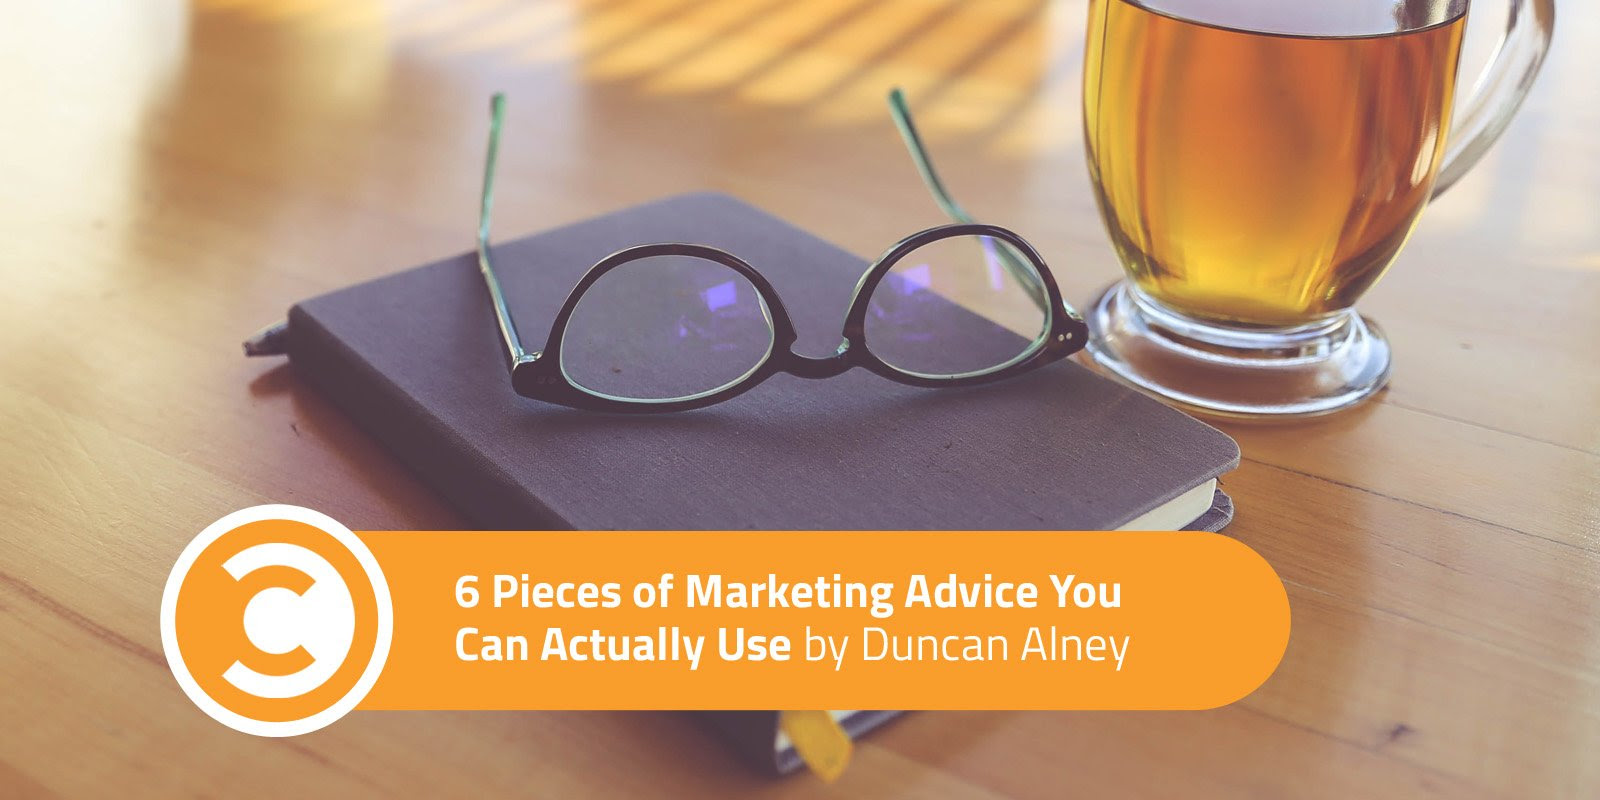 6 Pieces of Marketing Advice You Can Actually Use